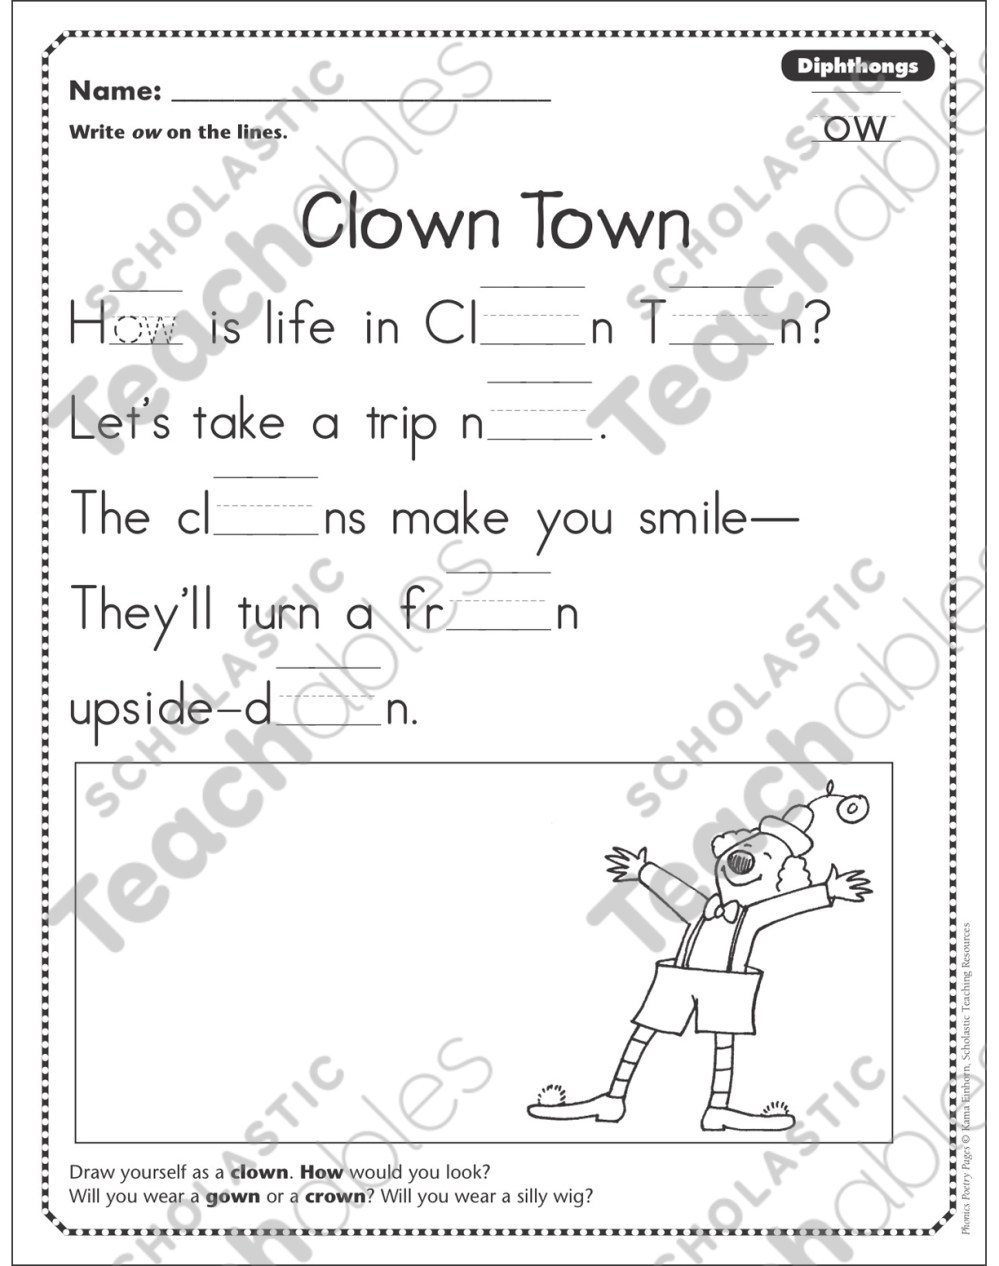 medium resolution of Clown Town (Dipthongs - ow): Phonics Poetry Page   Printable Skills Sheets